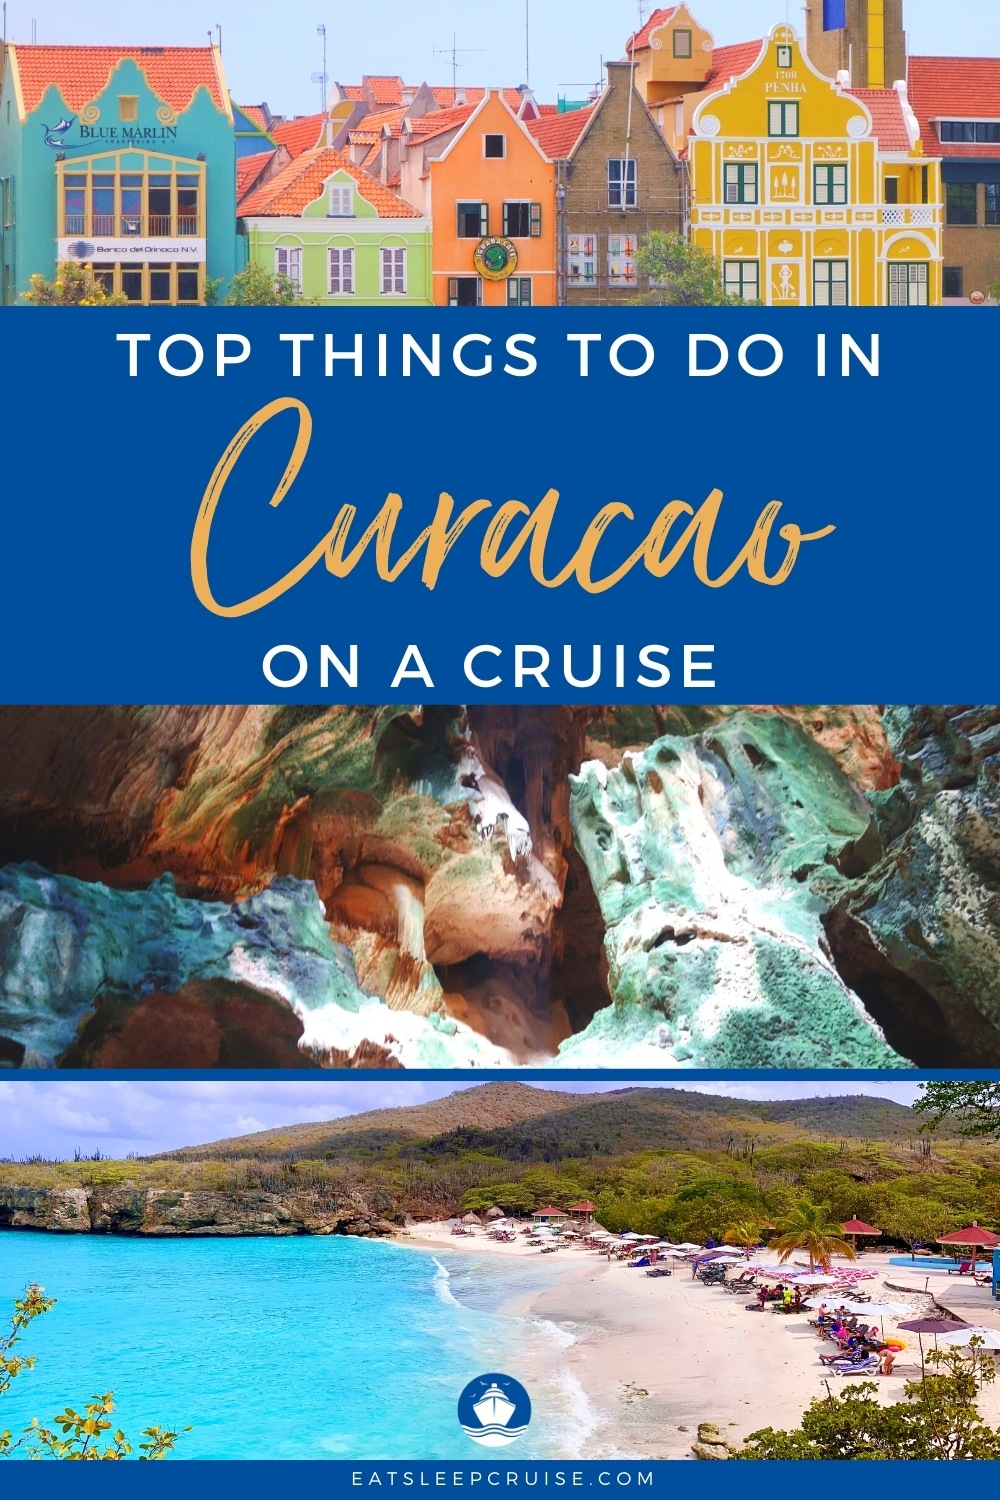 Top Things to Do in Curacao on a Cruise